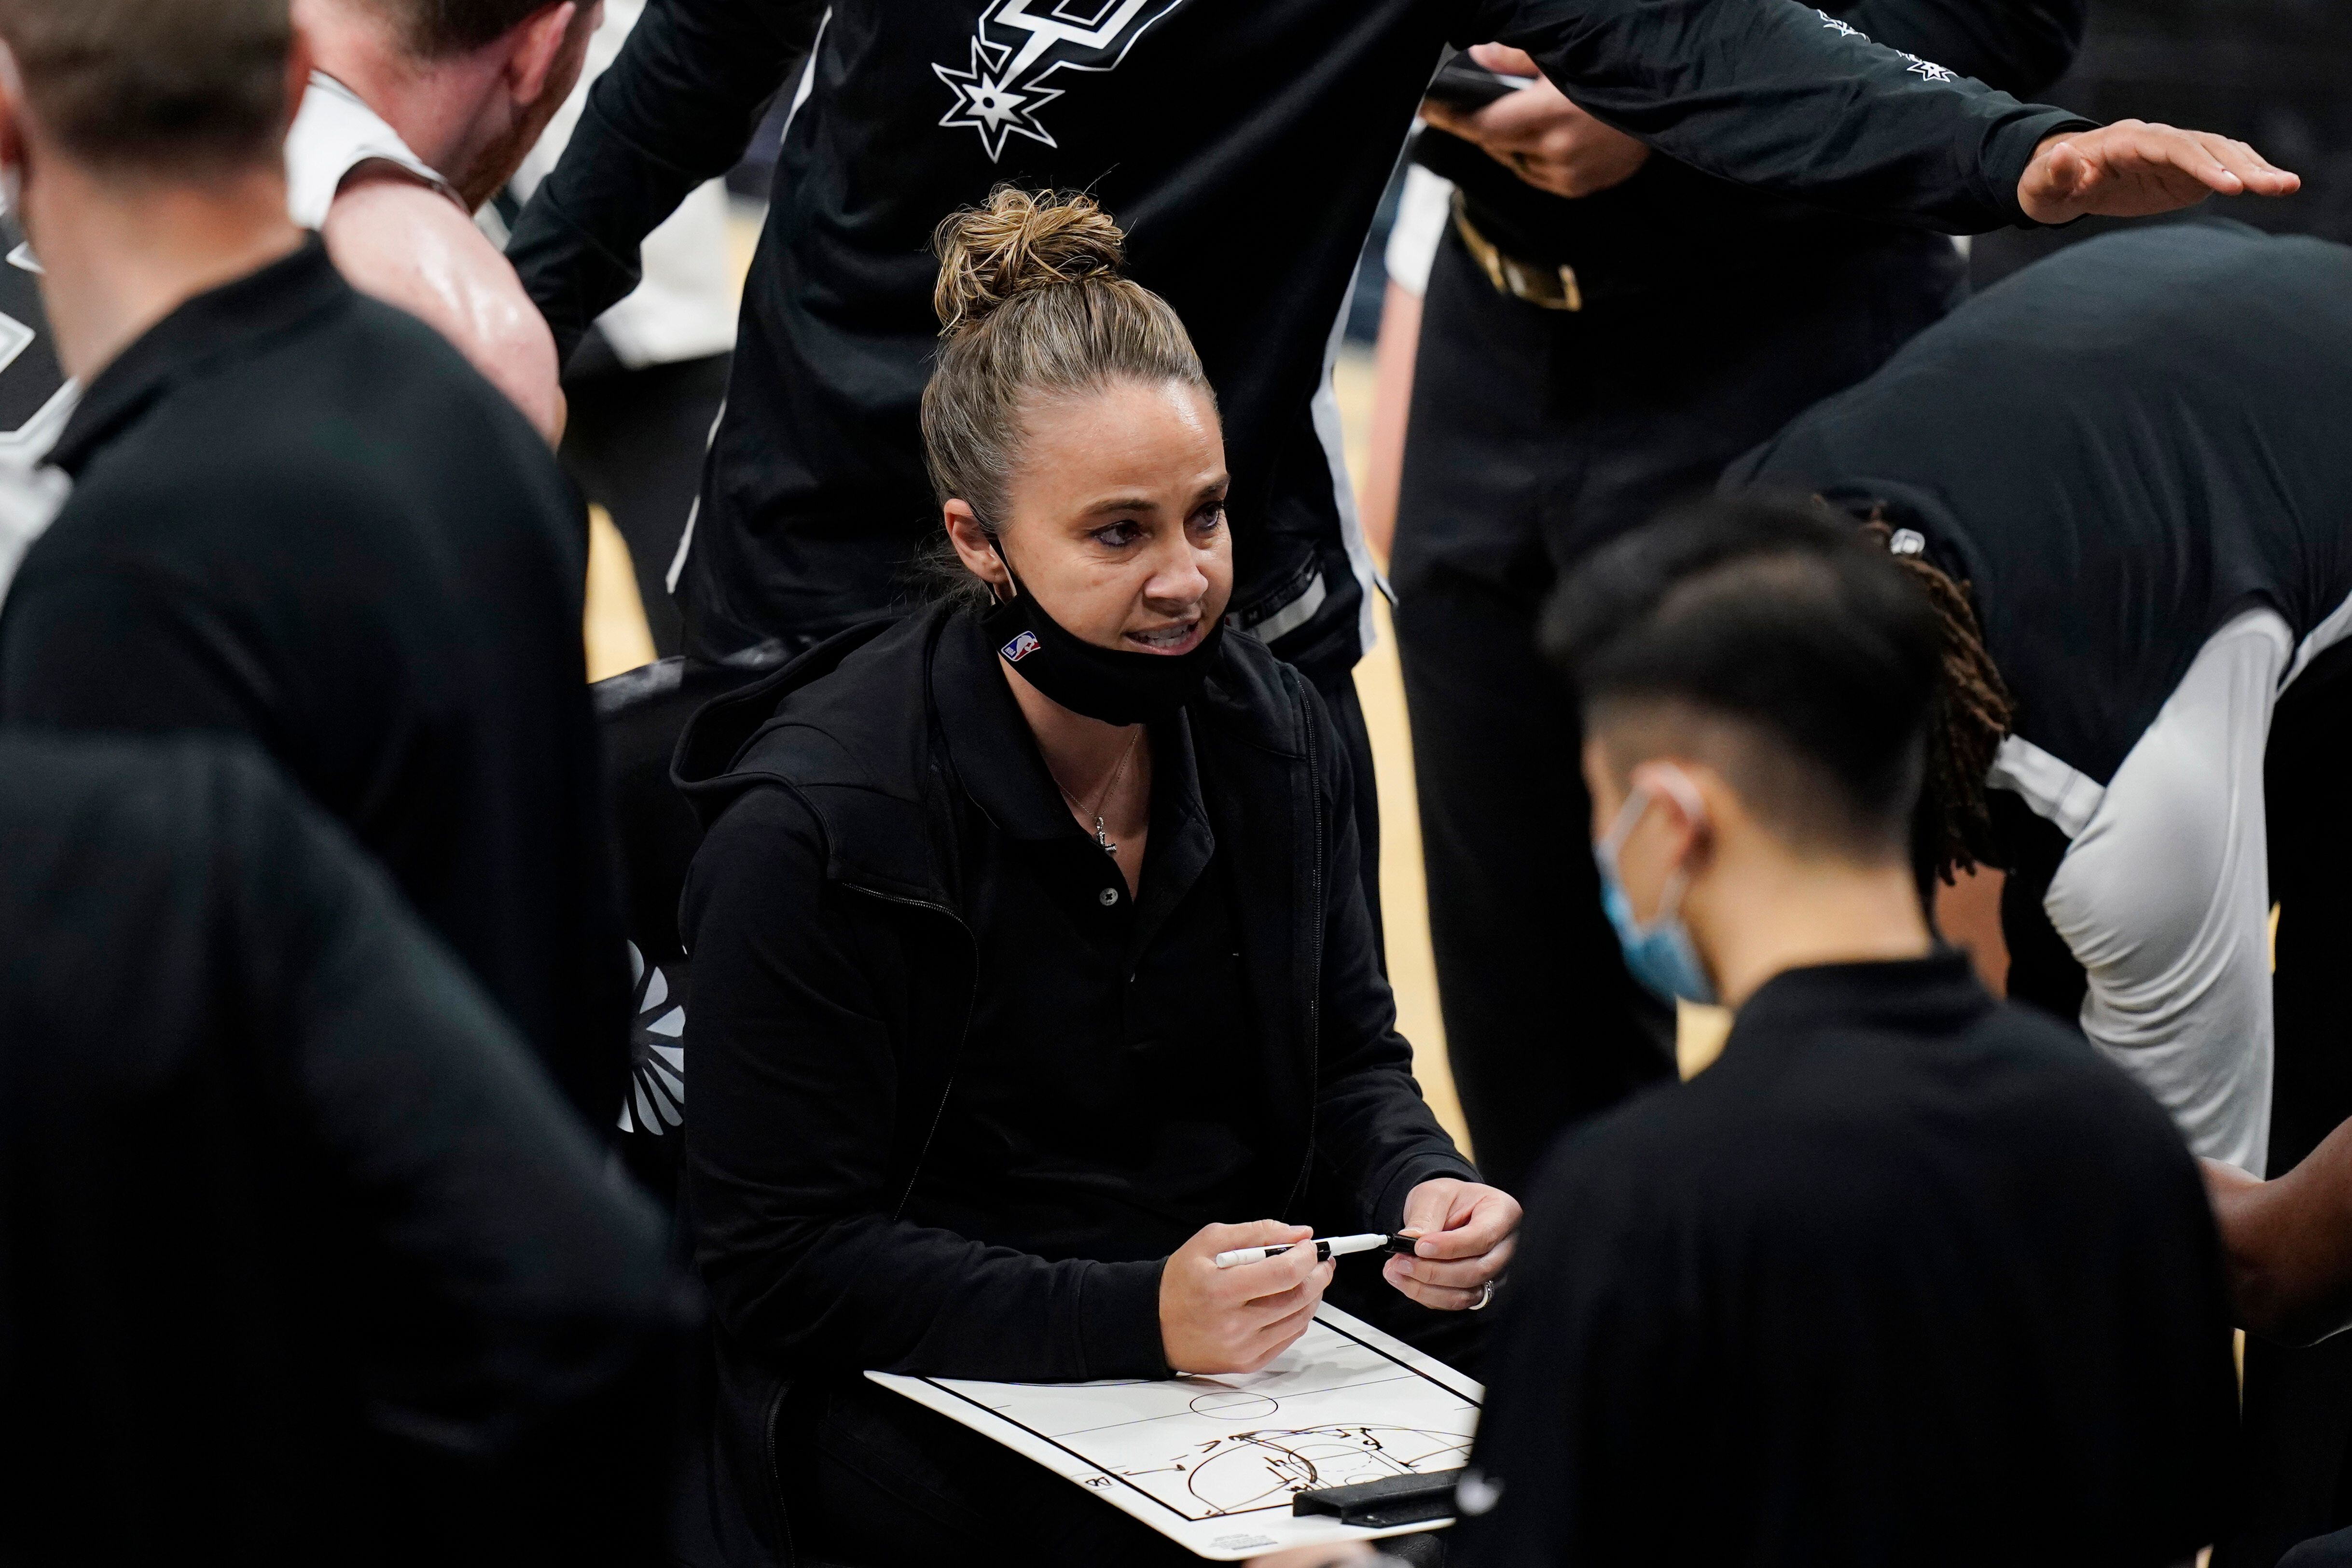 San Antonio Spurs assistant coach Becky Hammon calls a play during a timeout in the second half of the team's NBA basketball